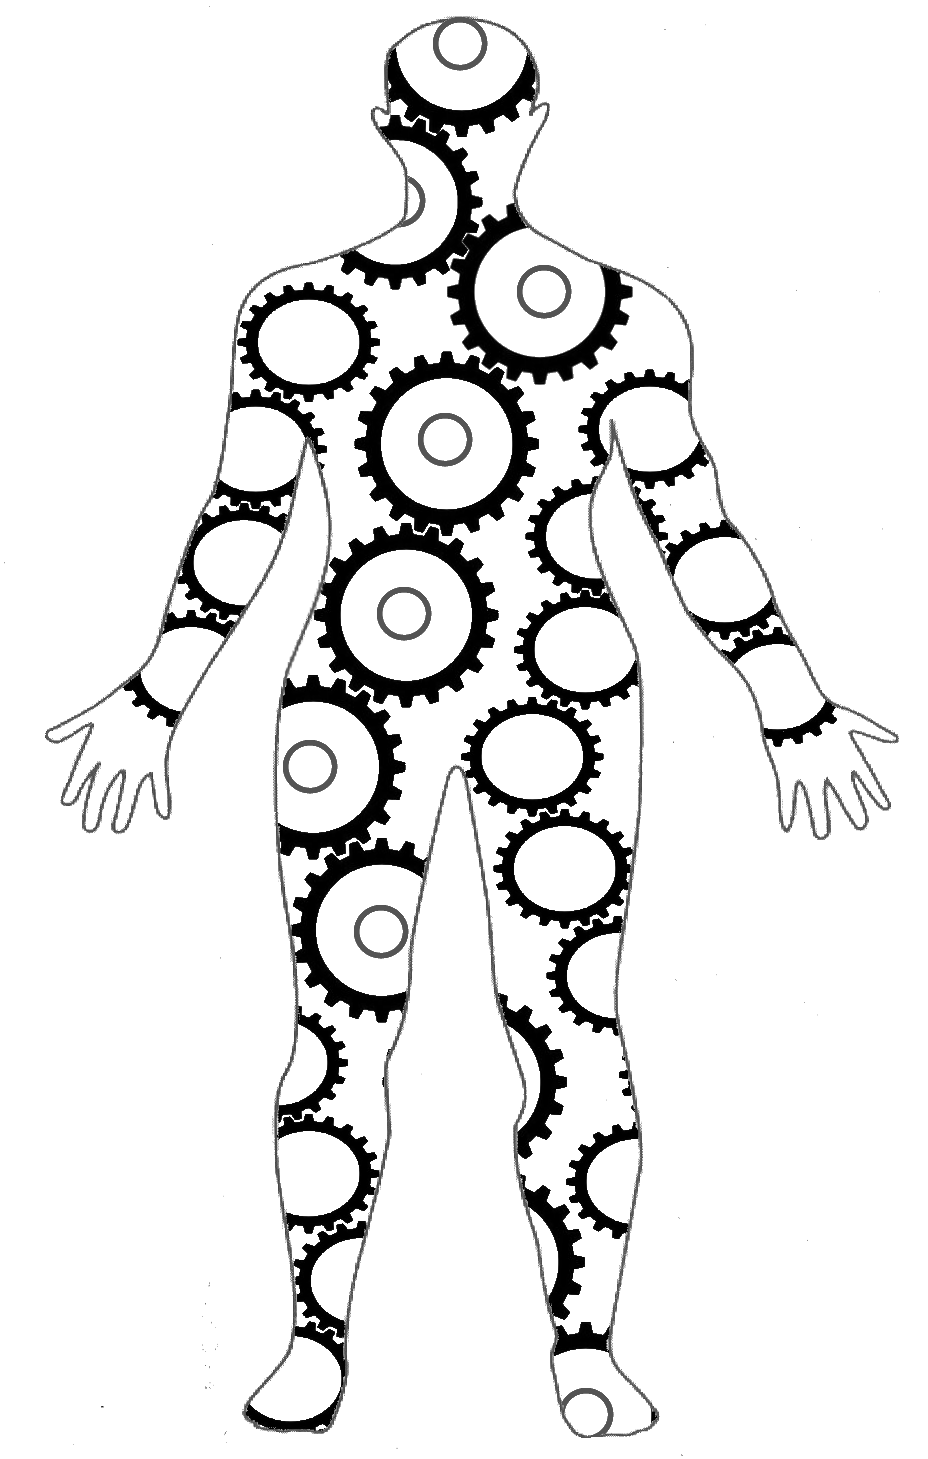 Liver clipart body clipart. Human silhouette medical at